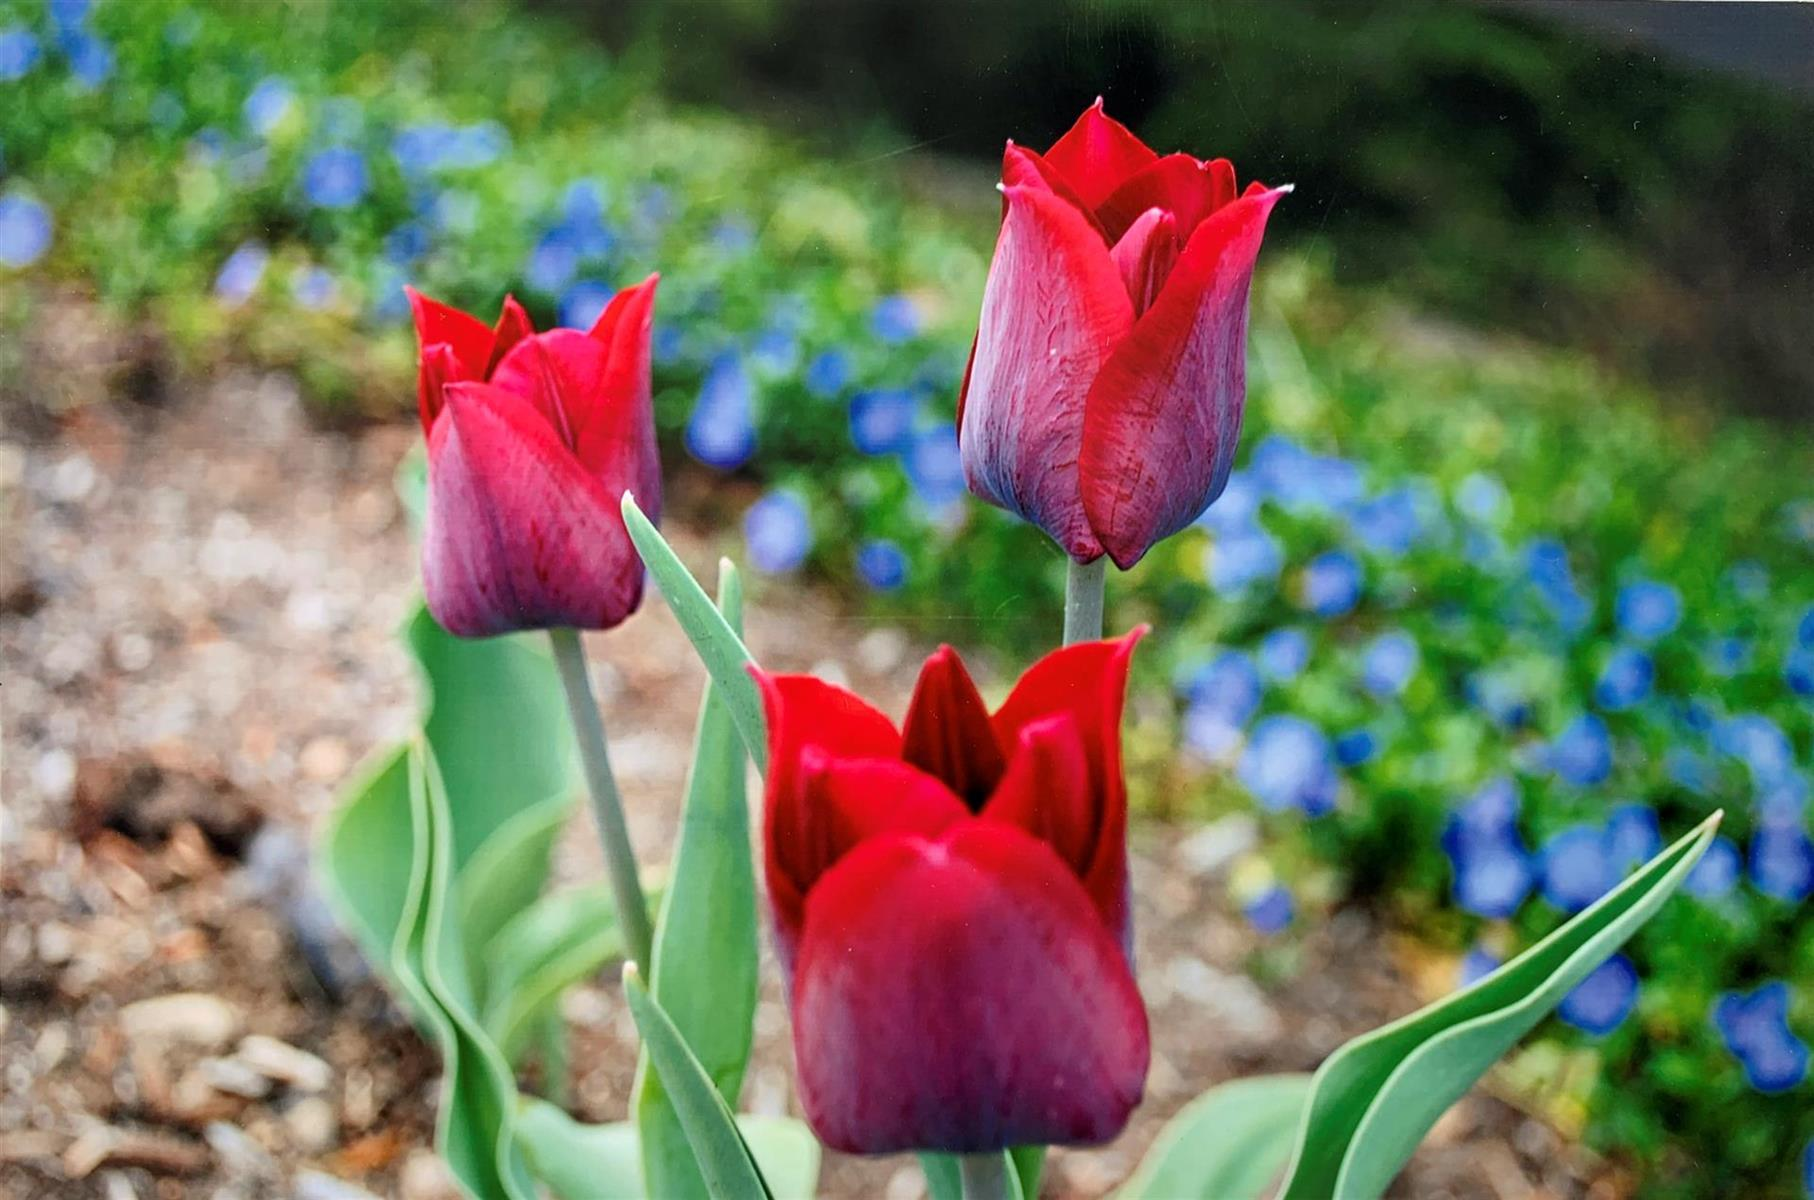 Tulips in the spring